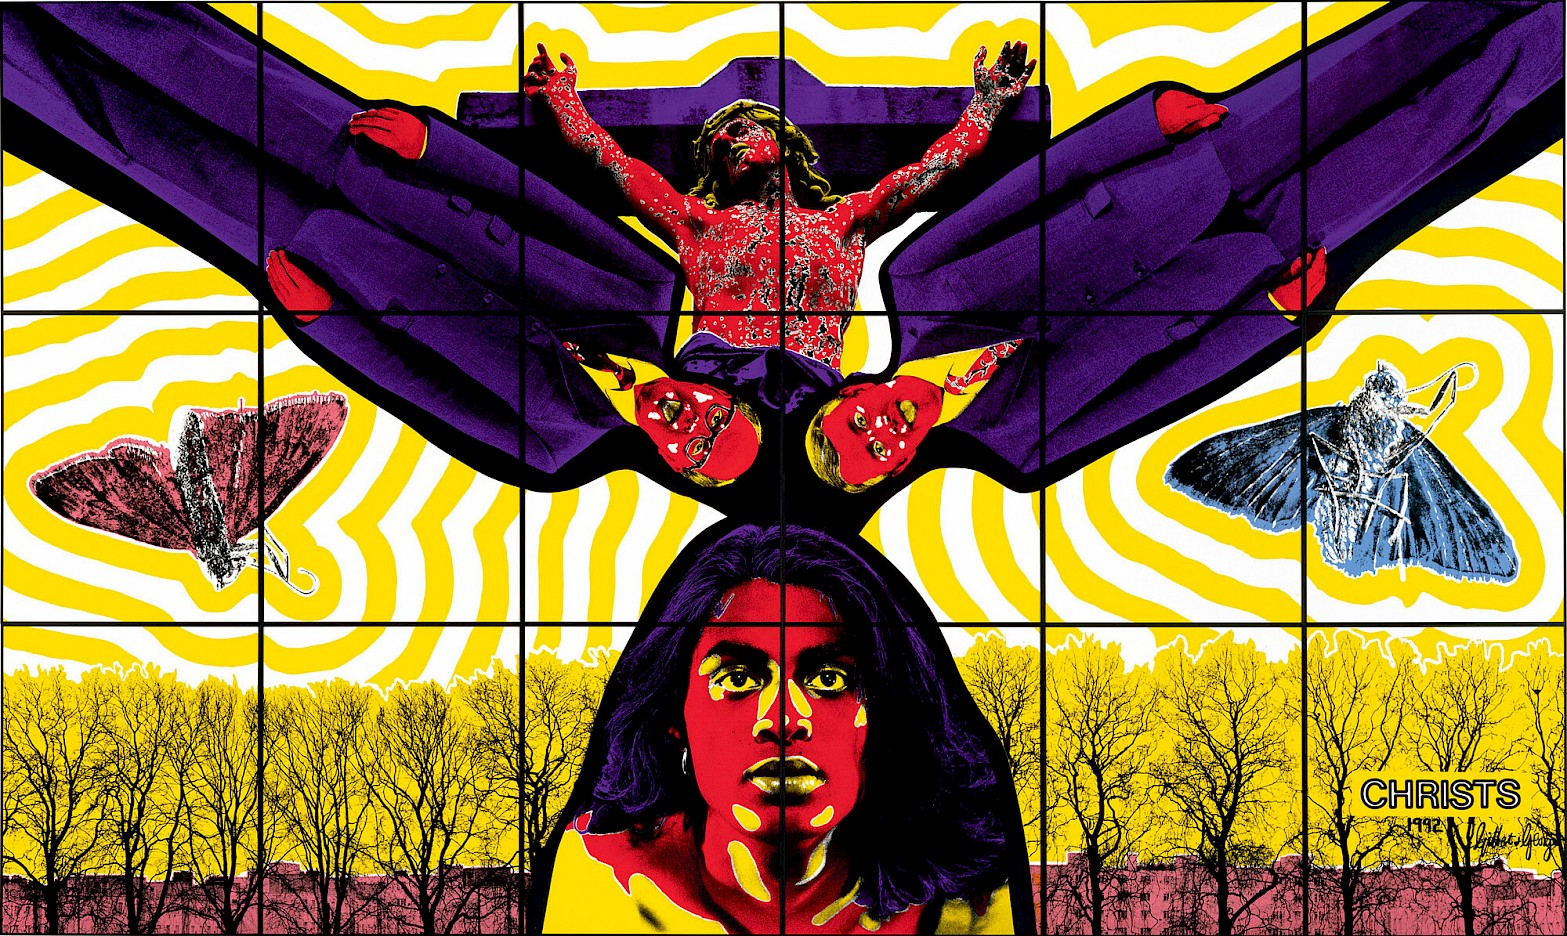 Gilbert & George, CHRISTS, 1992. 253 x 426 cm. Private collection. Courtesy of Gilbert & George.